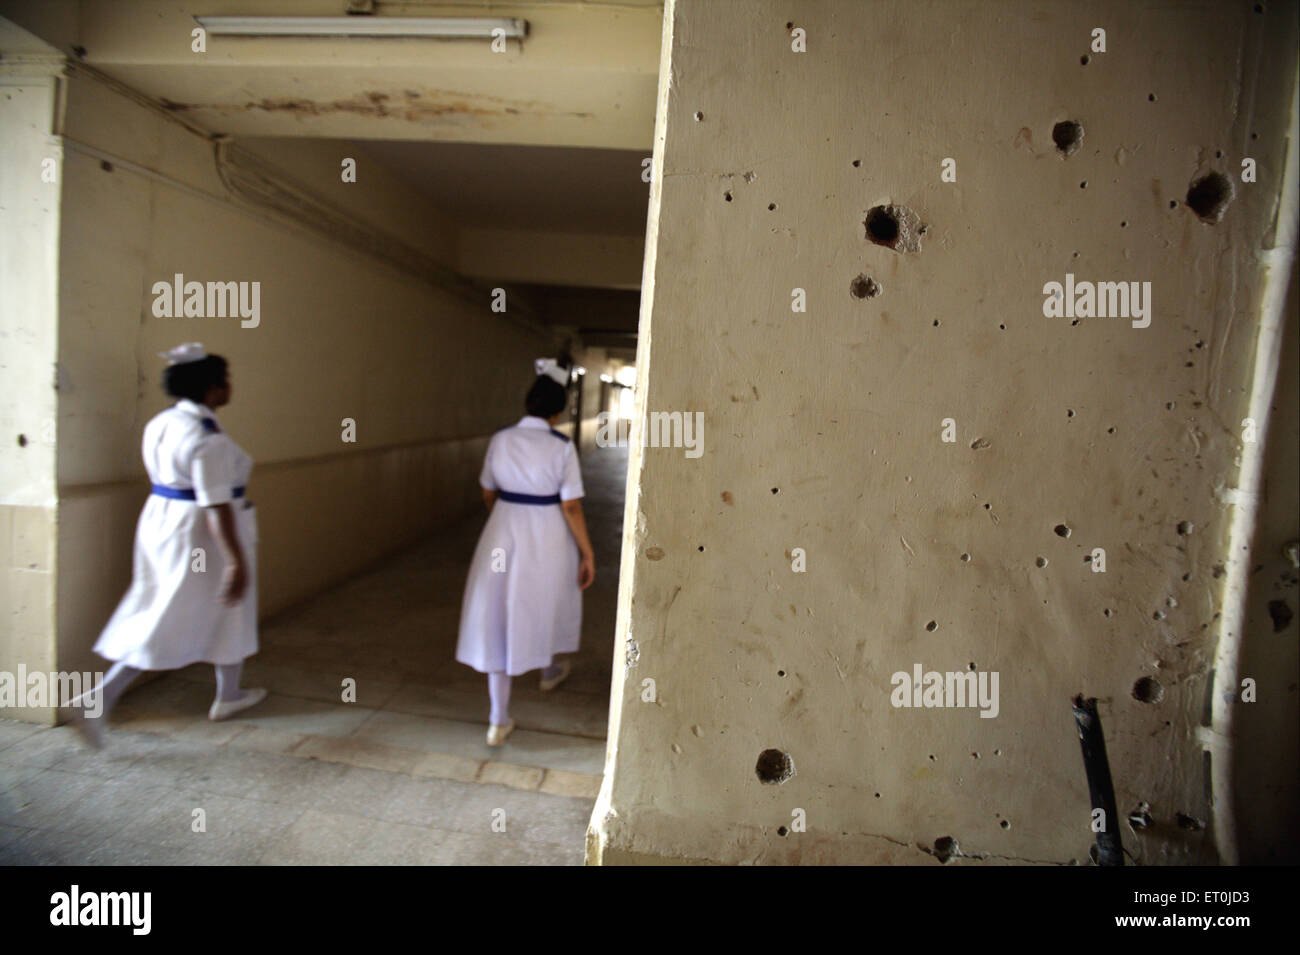 Bullets marks on walls of Cama and Albless hospital in terrorist attack by Deccan Mujahedeen on 26th November 2008 - Stock Image